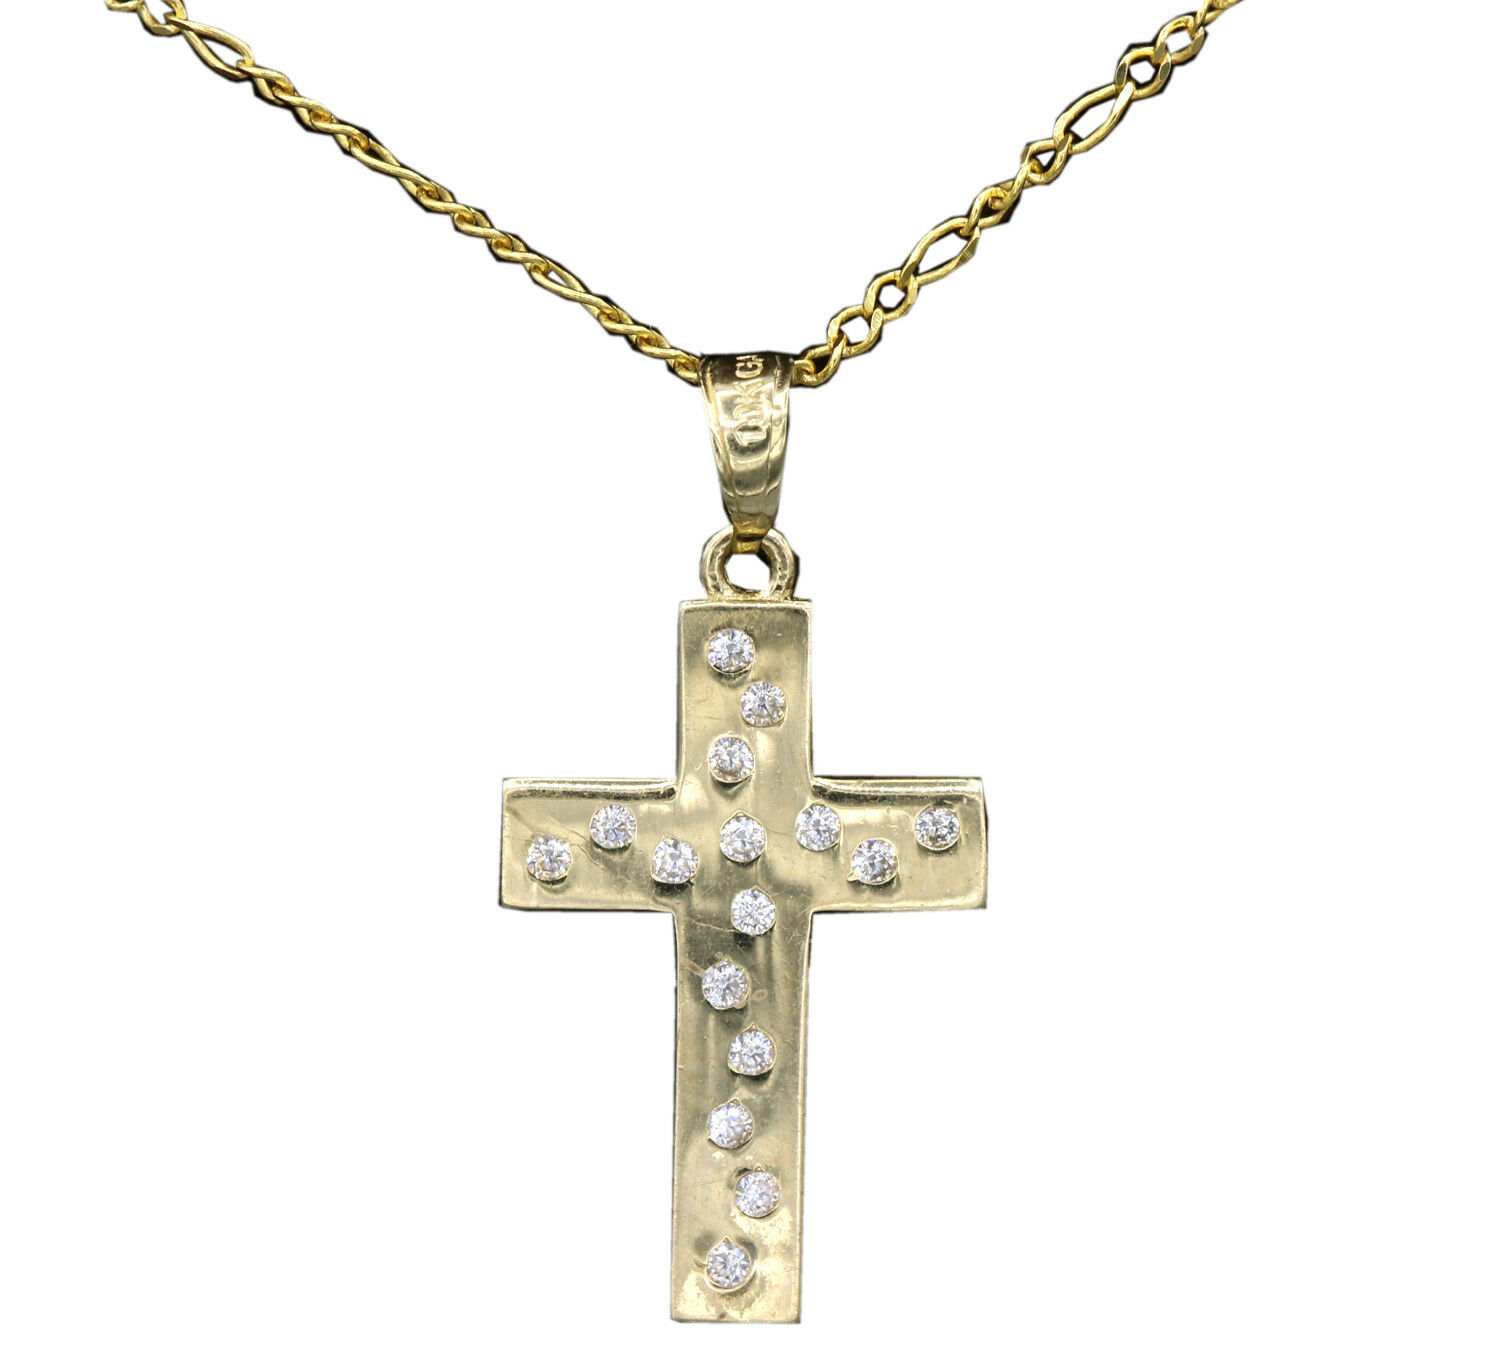 10k Solid Yellow gold Cross Charm CZ Pendant. With gold Chain